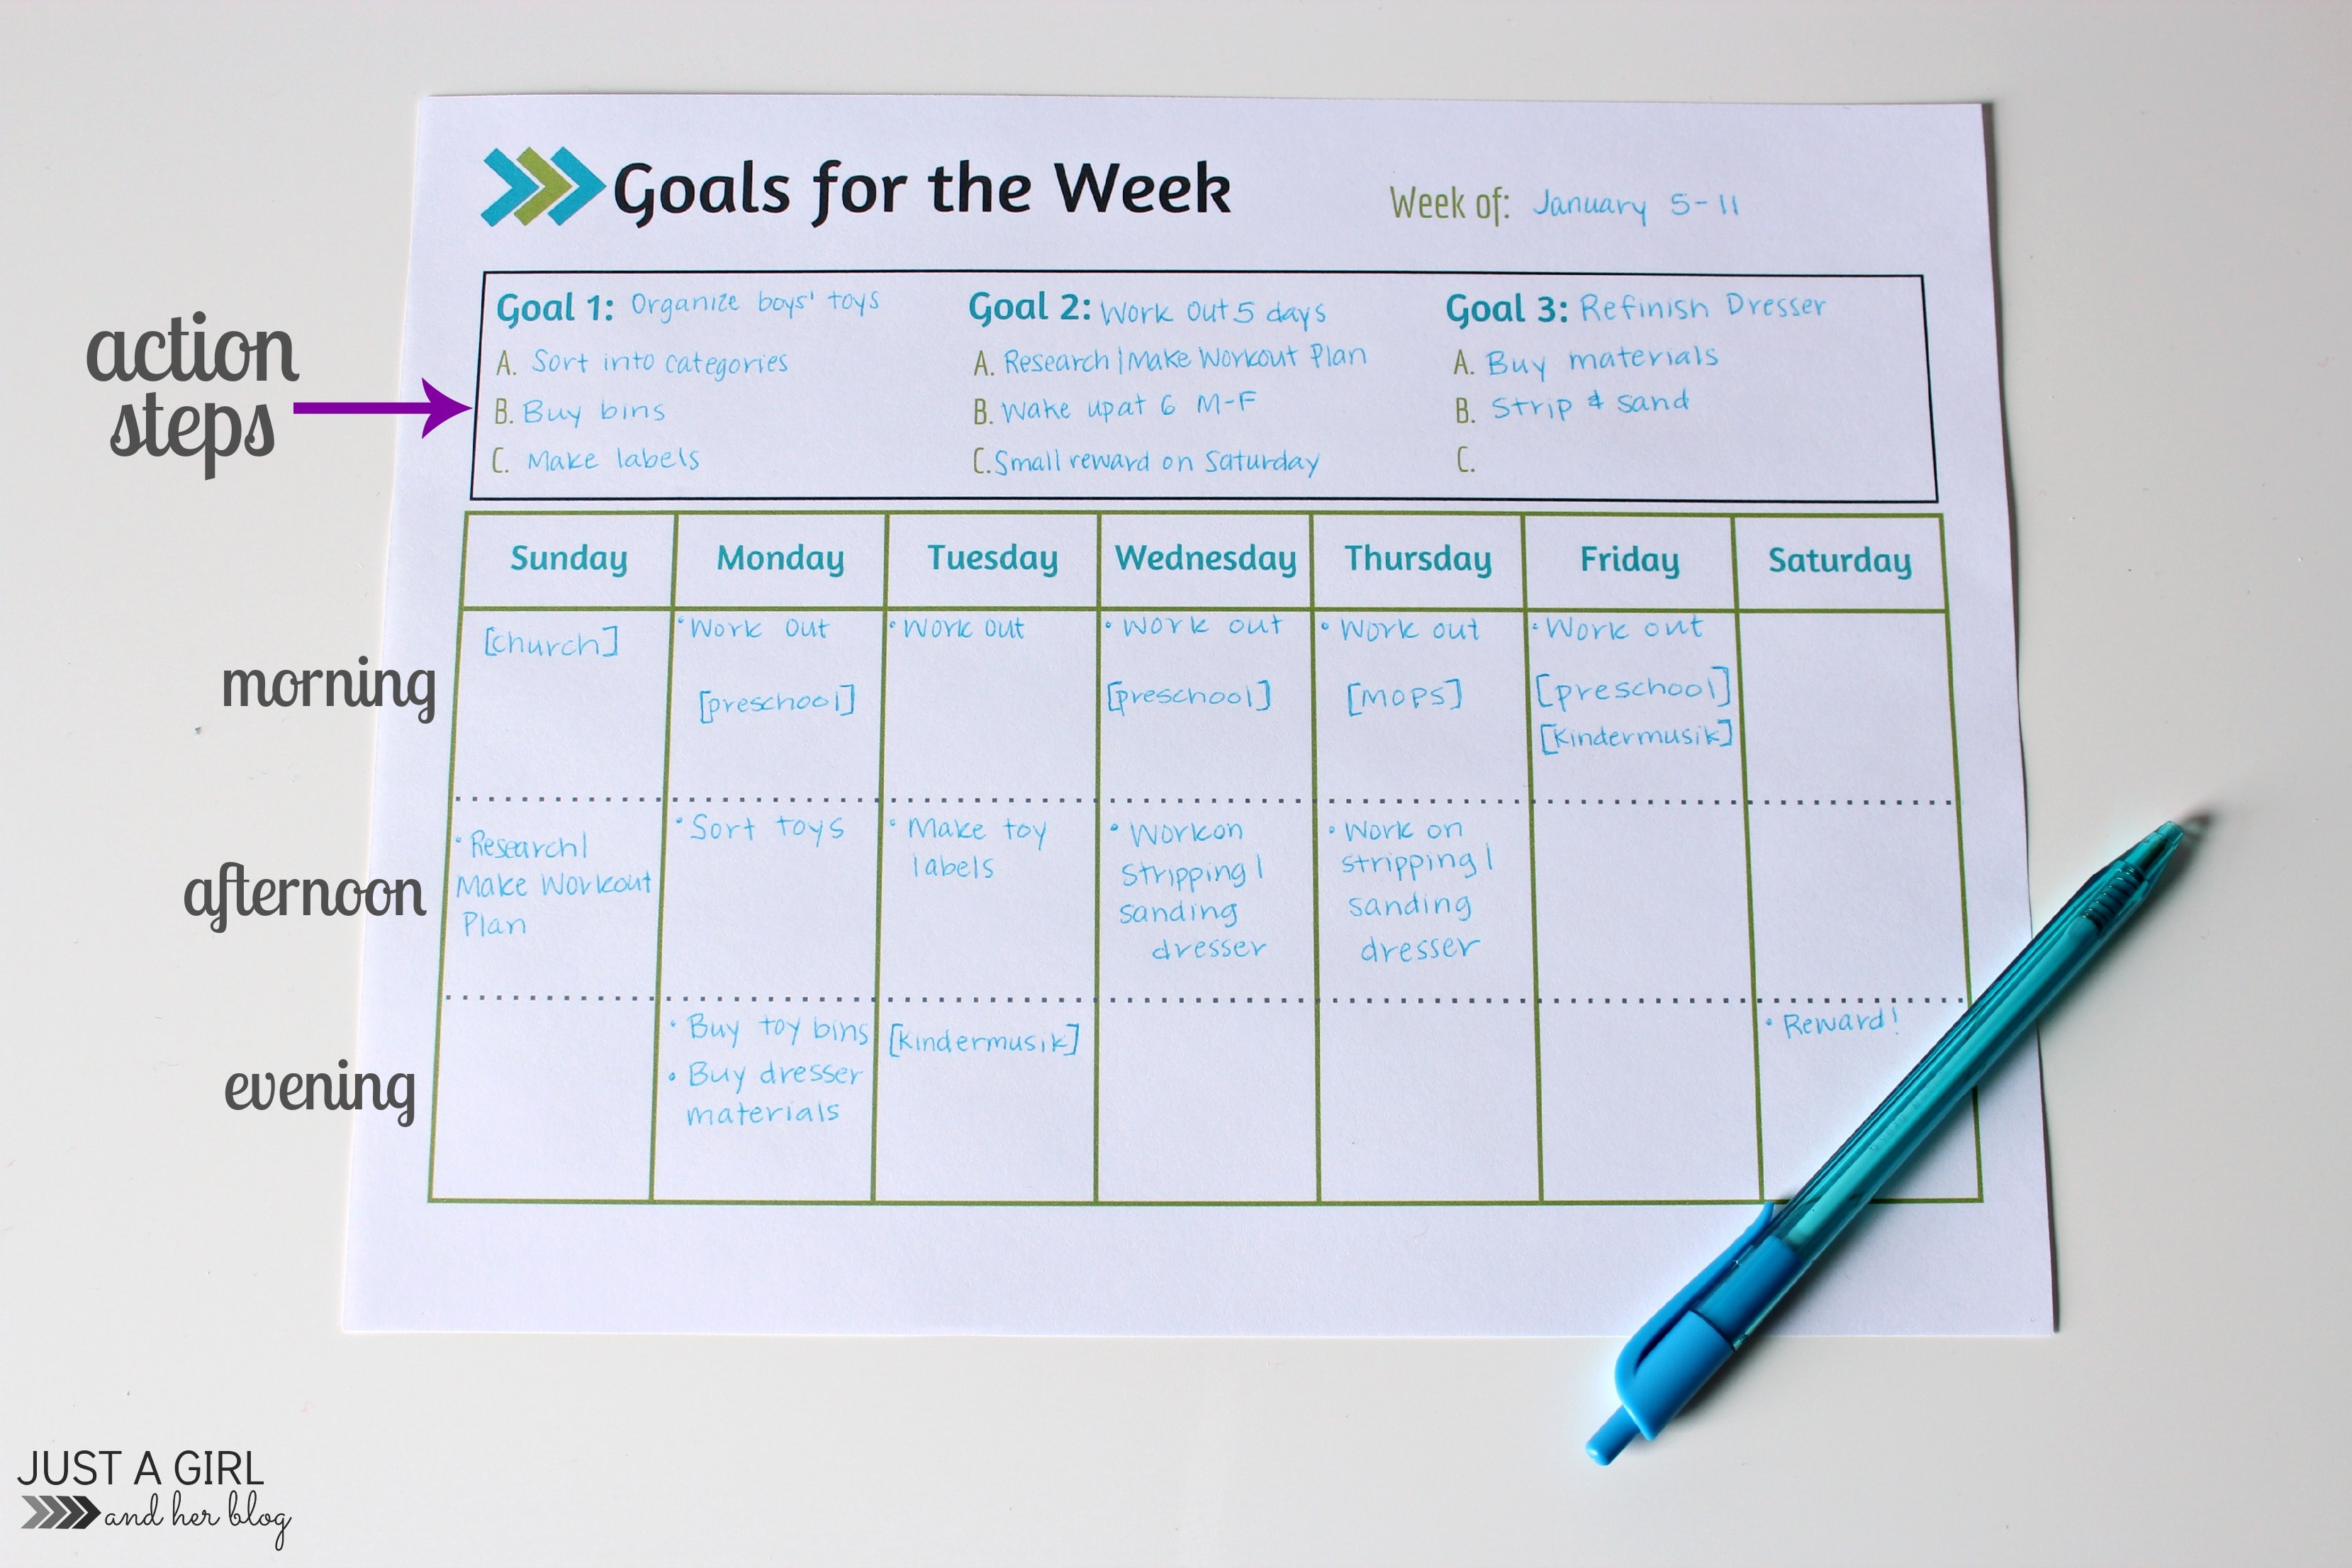 Weekly Goals Printable ~ Free Printable! - Mom 4 Real